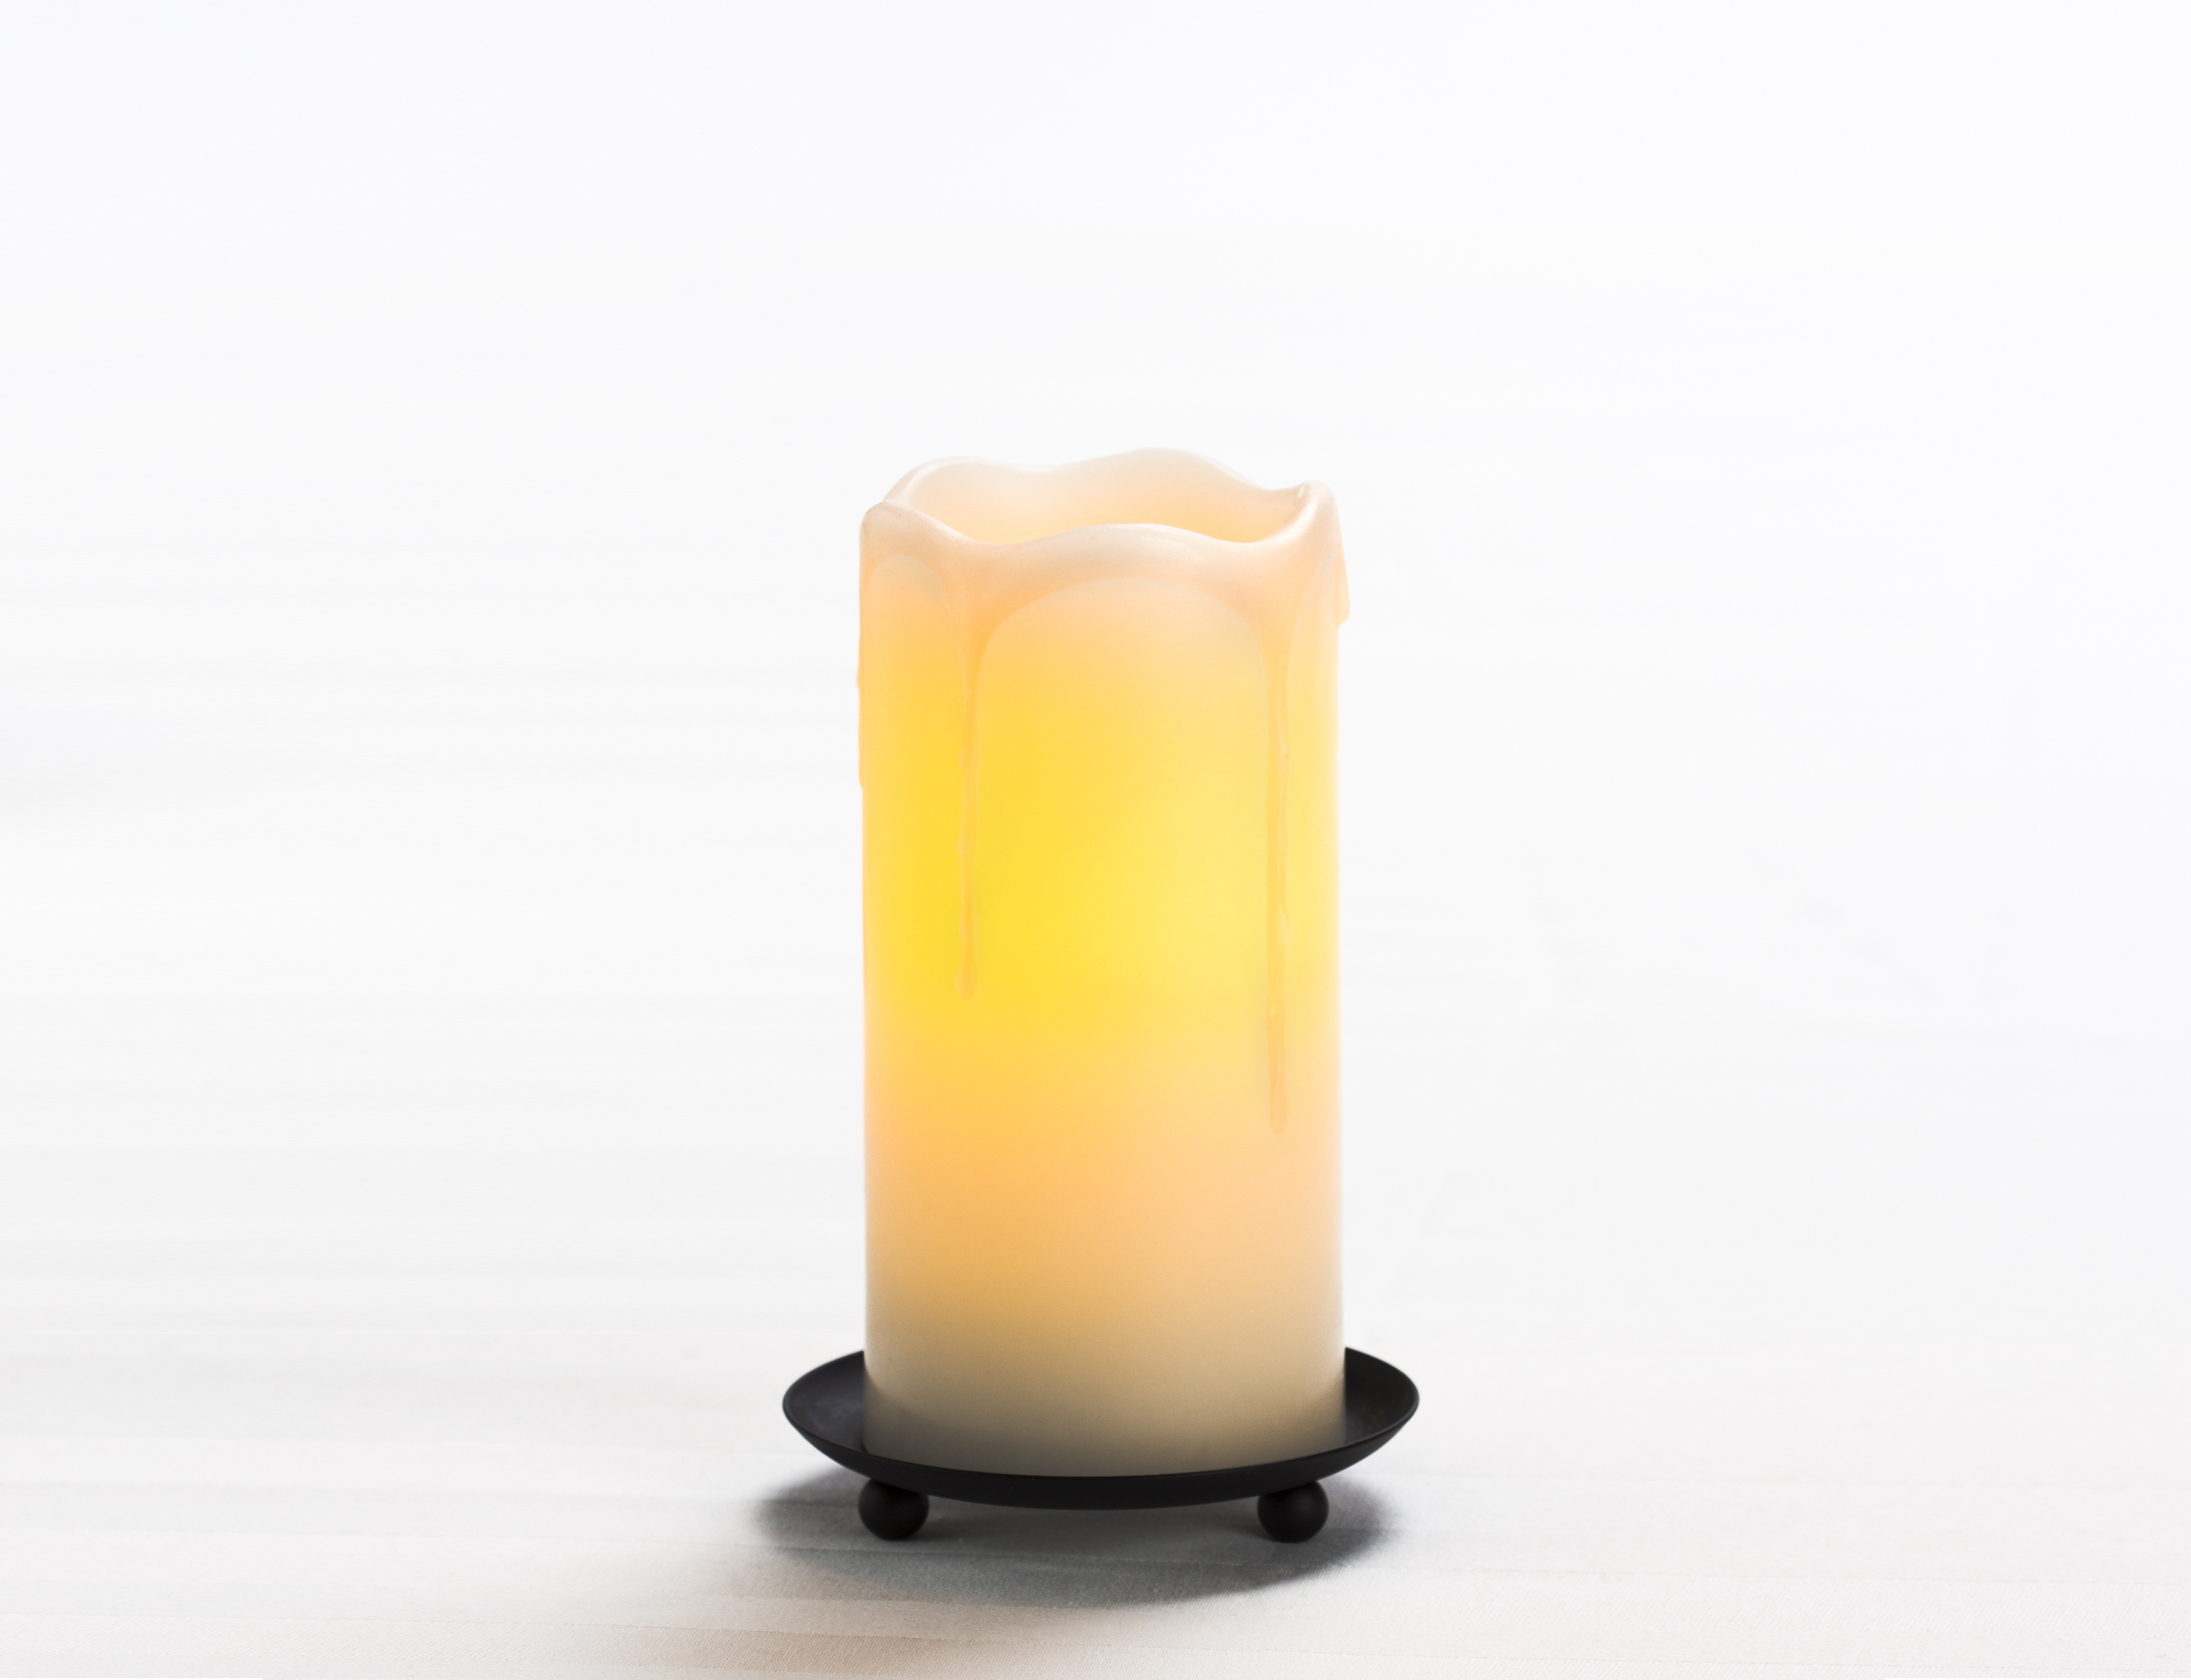 6 Inch Flameless Melting Look Pillar Candle with Timer - Cream with Vanilla Scent